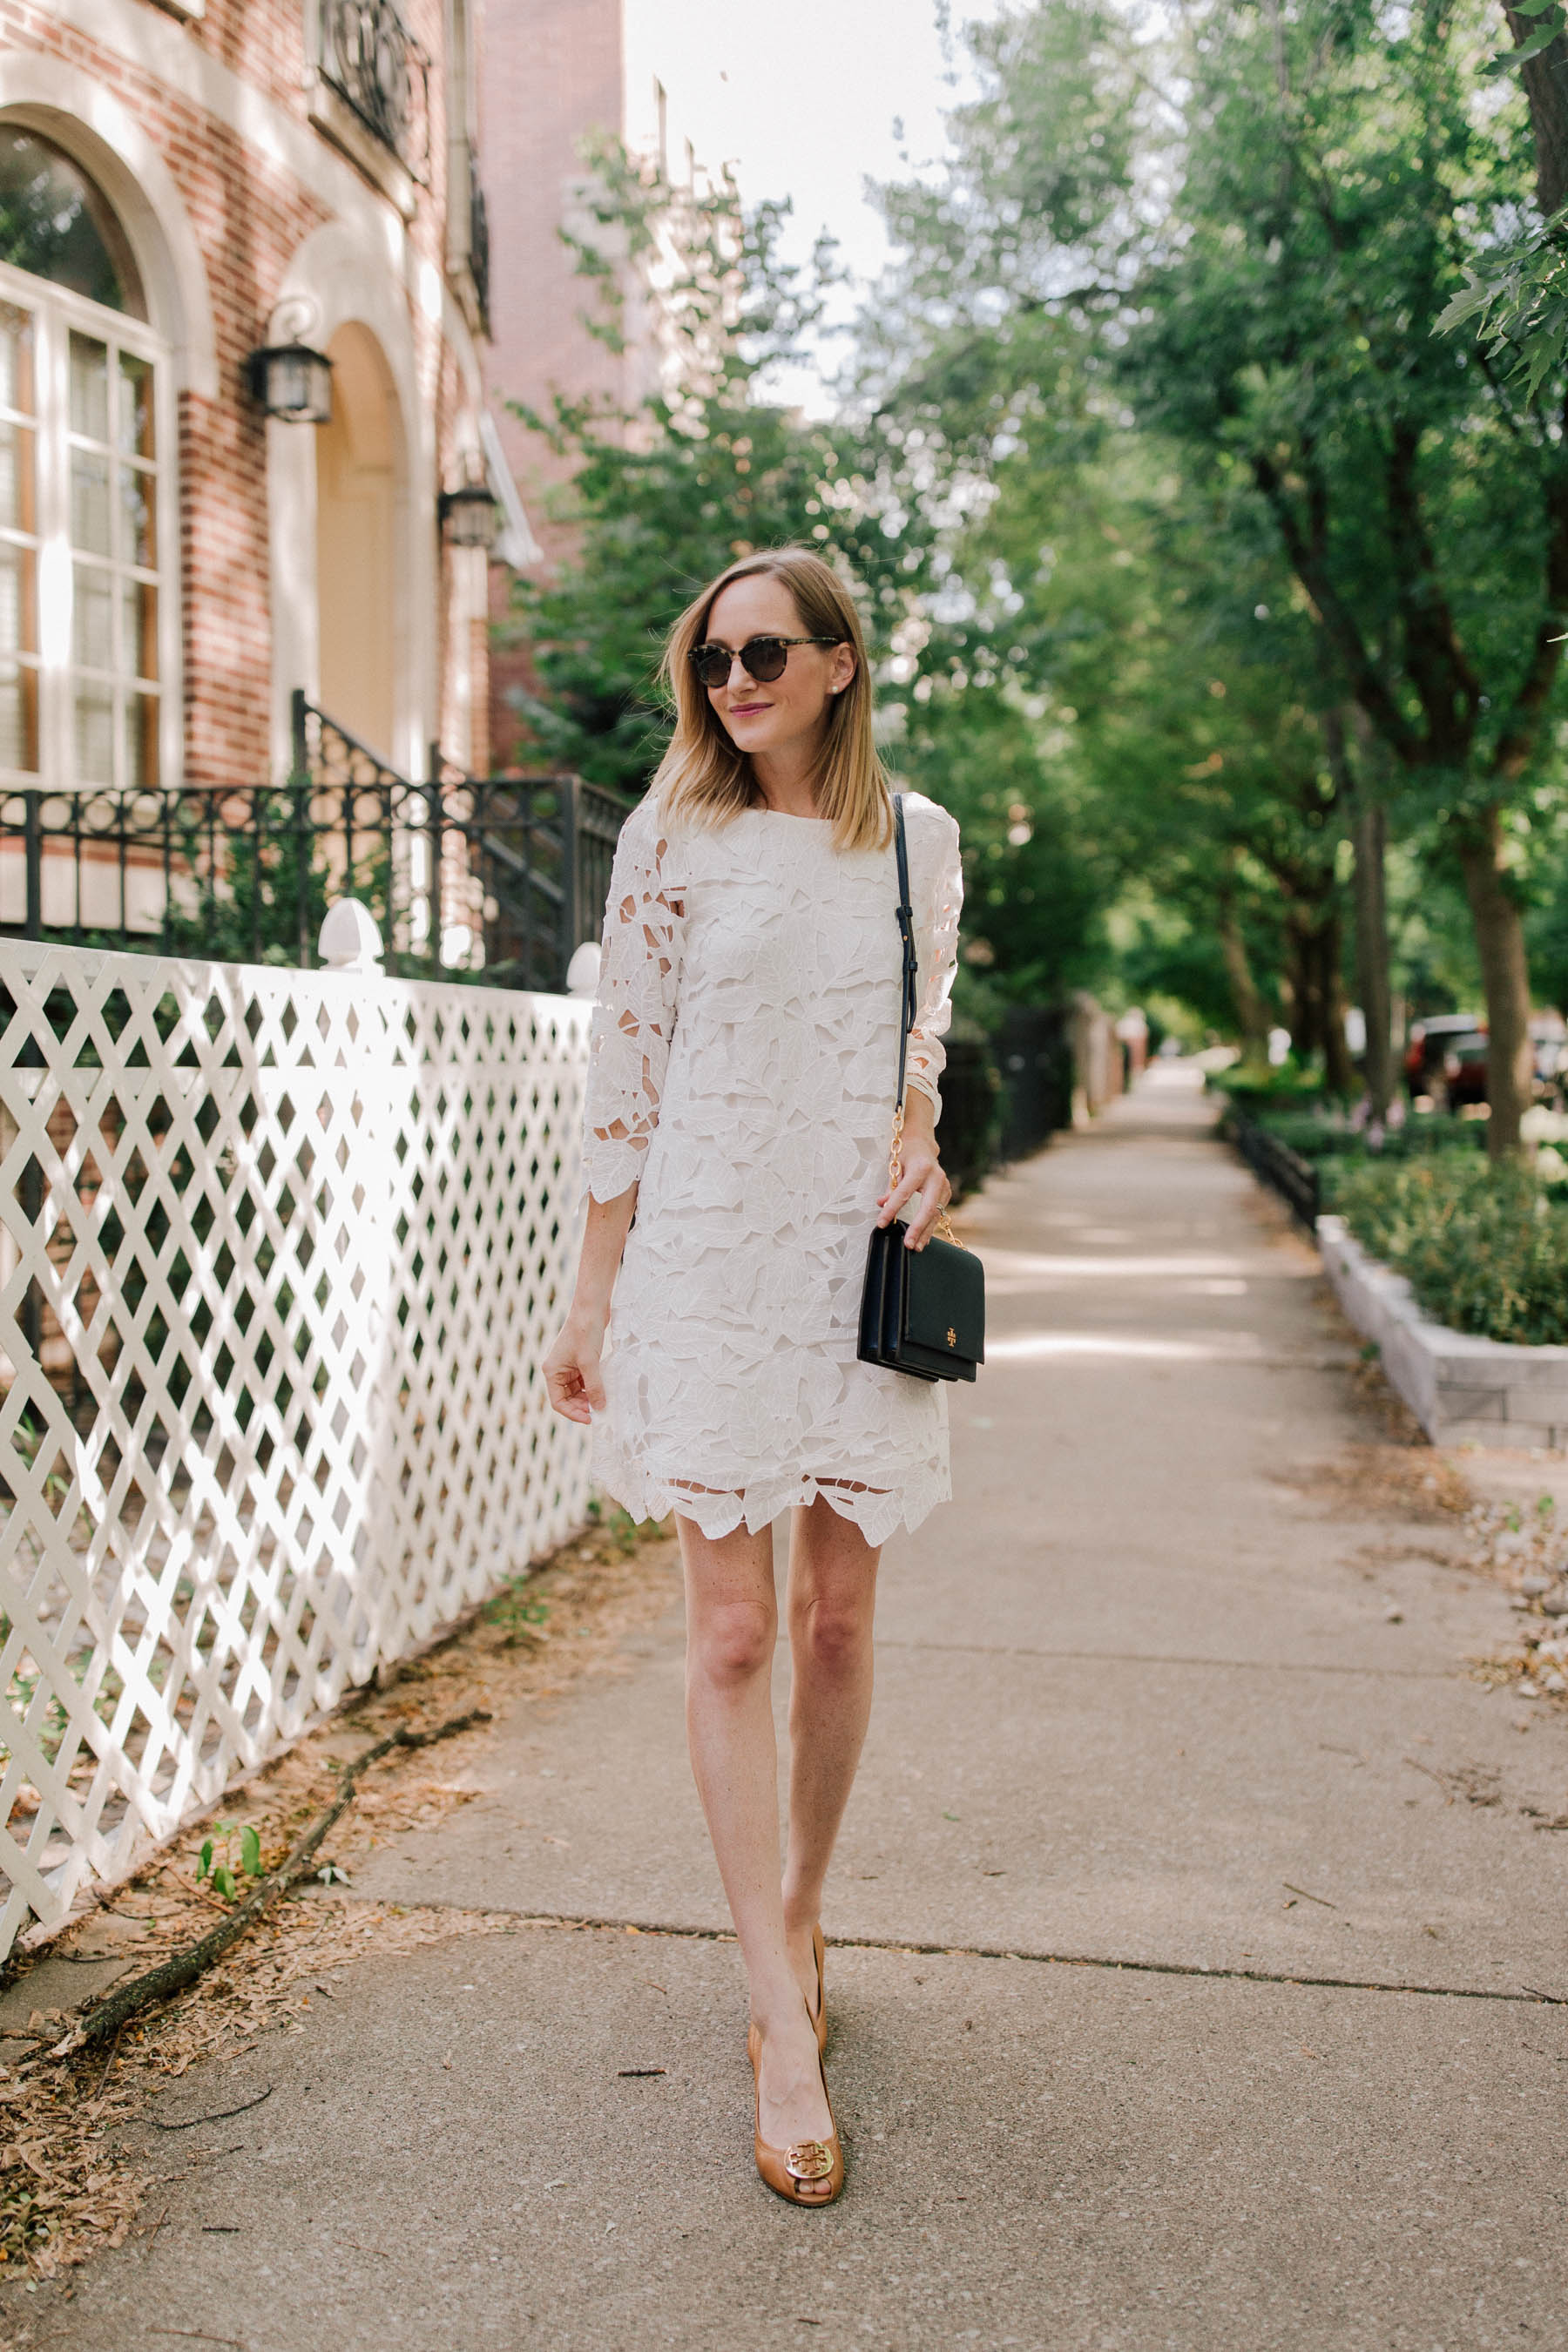 144abb3fb1671c White Lace Dress / Tory Burch Navy Bag / Tory Burch Wedges - Nordstrom -  Kelly